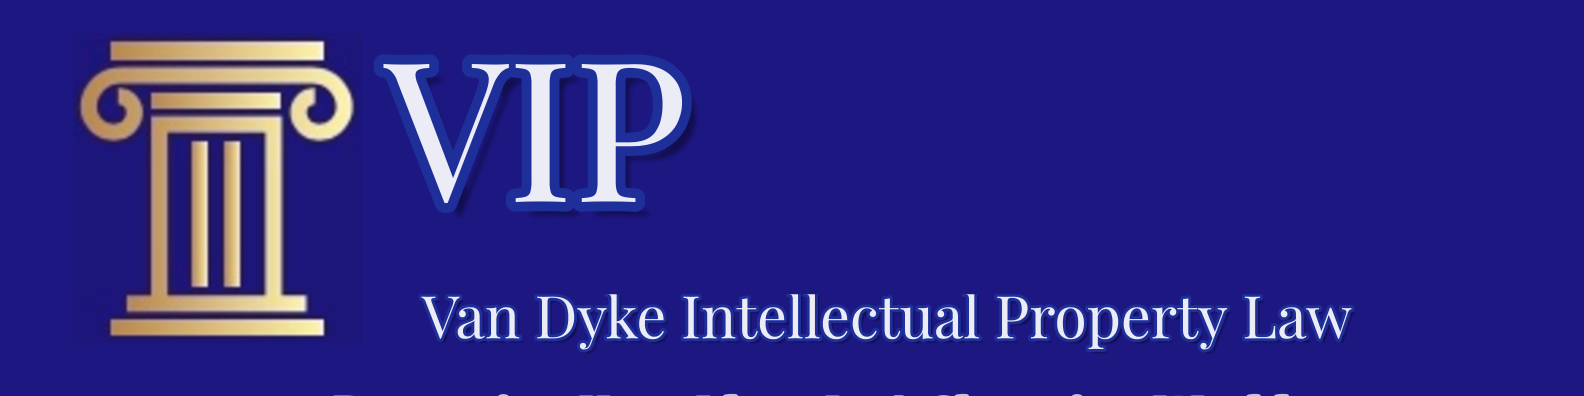 Van Dyke Intellectual Property Law